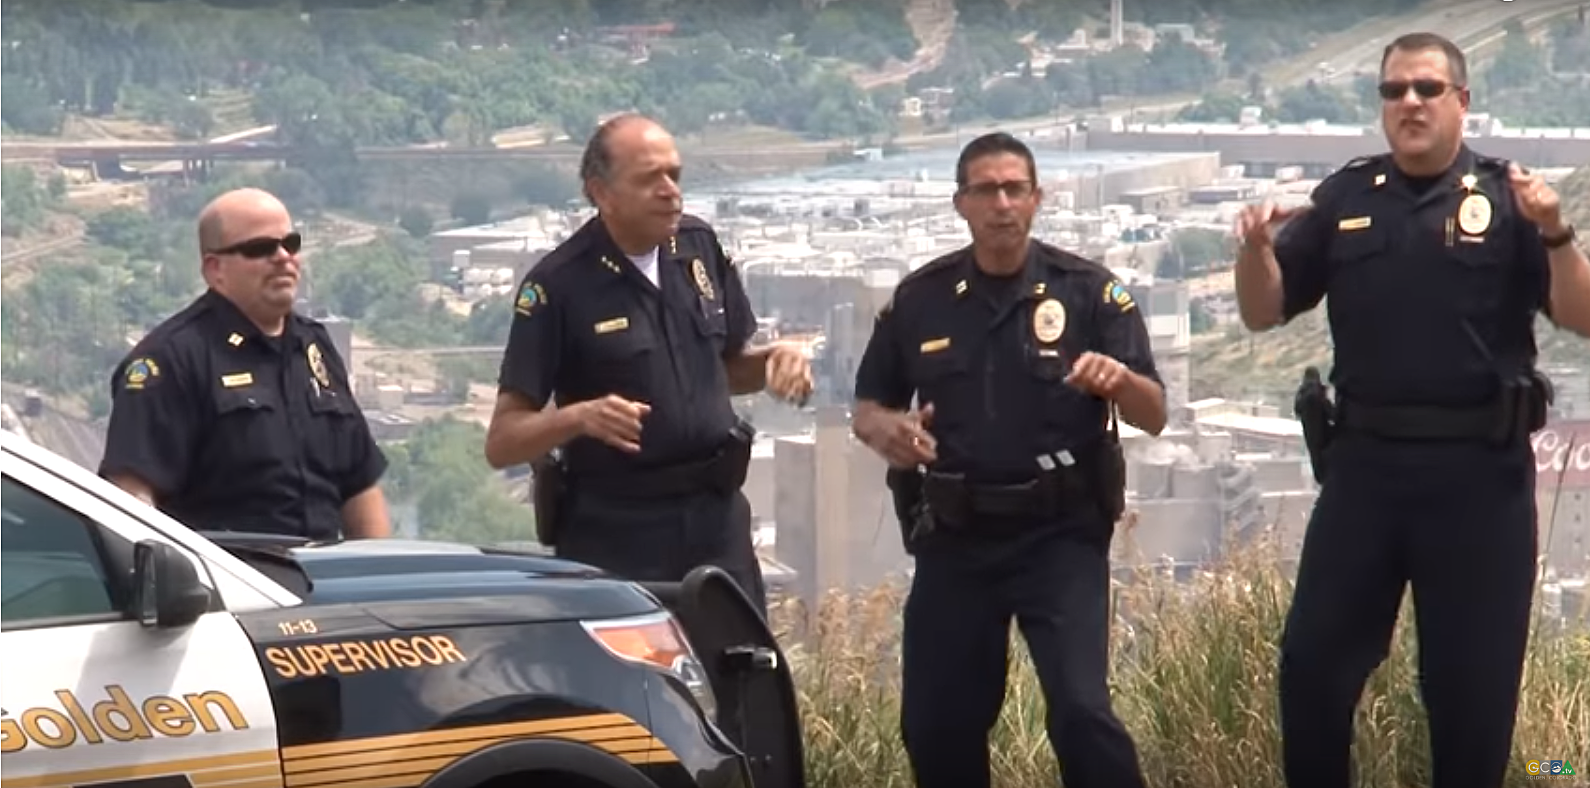 Golden Police Show Their Stuff in Lip Sync Challenge